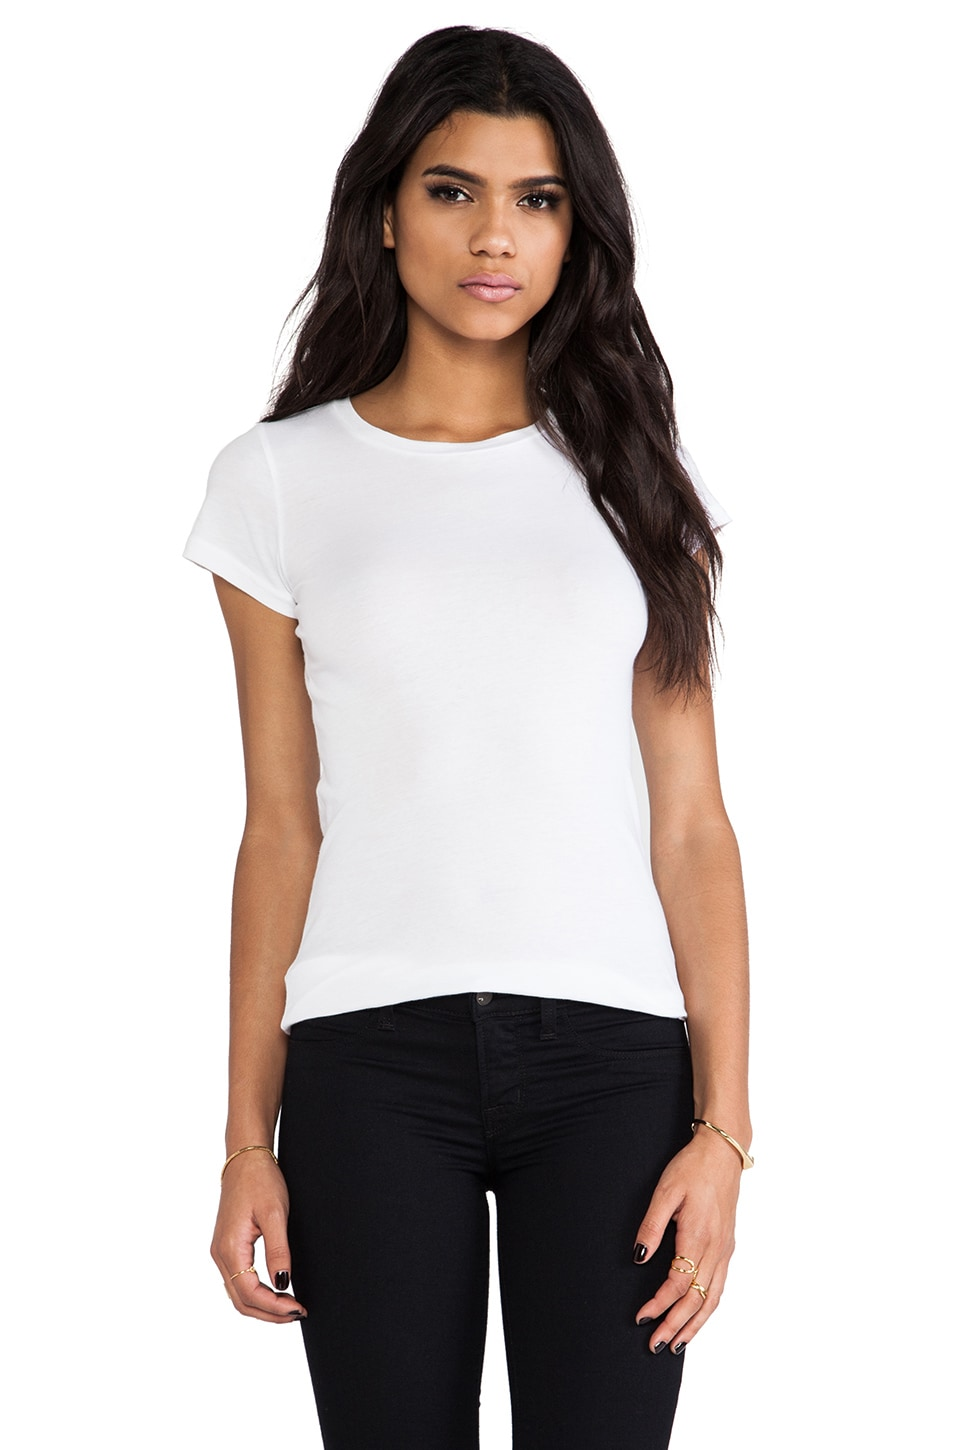 Velvet by Graham & Spencer Jemma Gauzy Whisper Crew Top in White